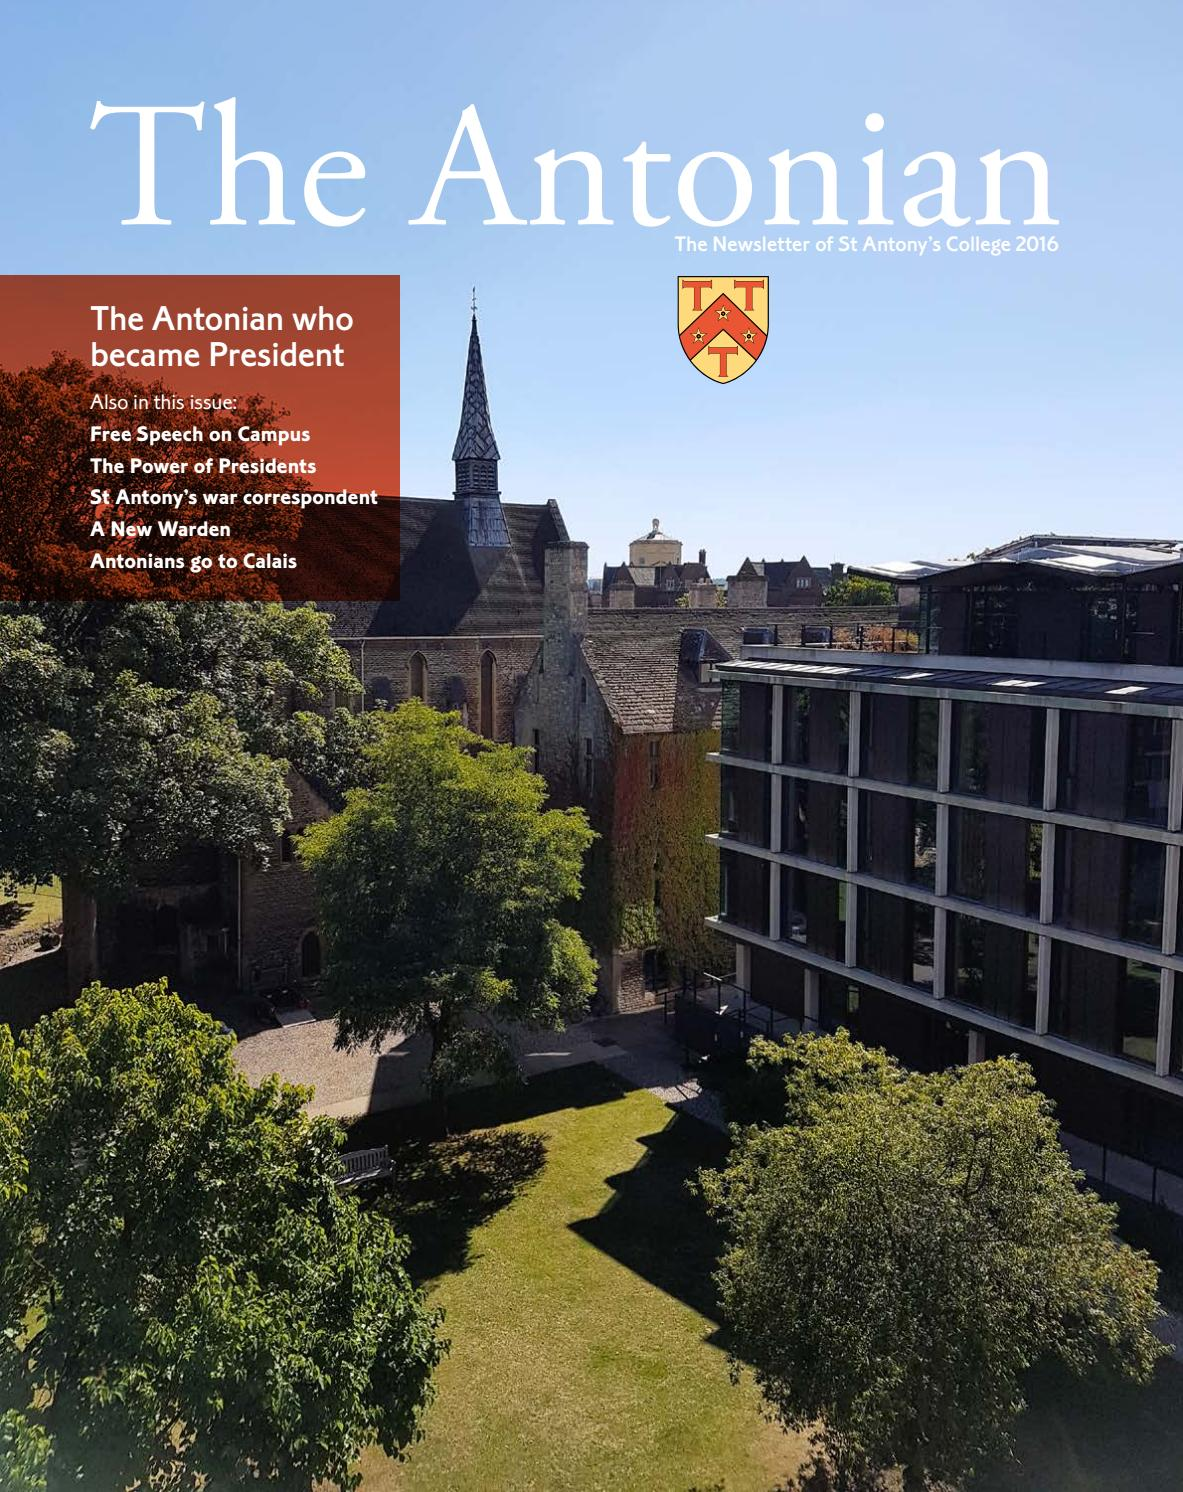 a102e99f2405e The Antonian Newsletter 2016 by St Antony s College - issuu